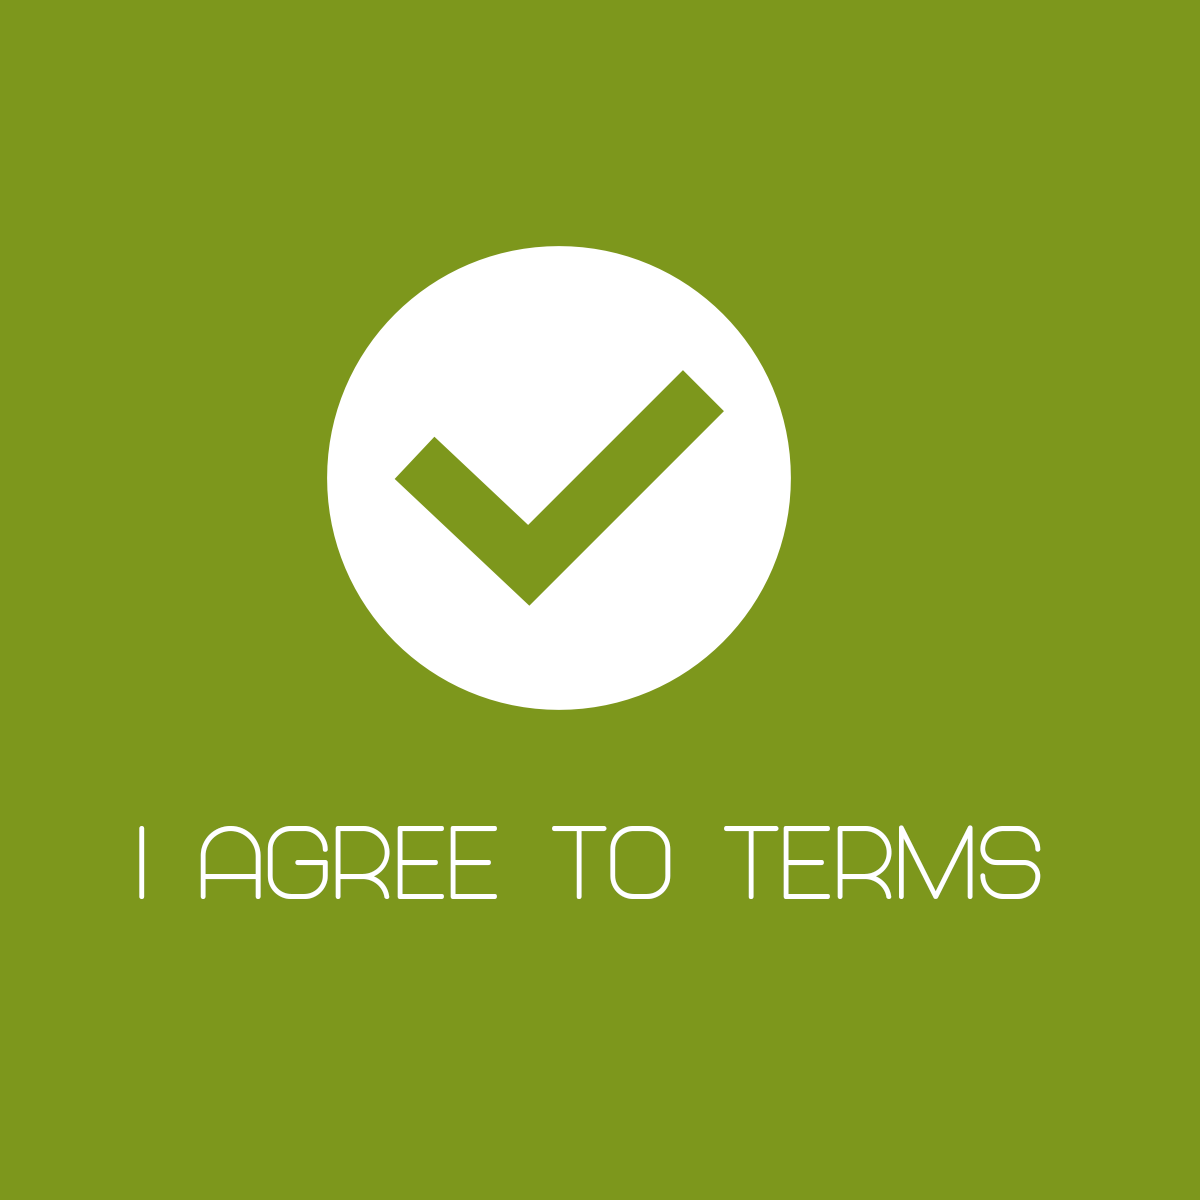 Shopify Terms & Conditions app by Zooomy